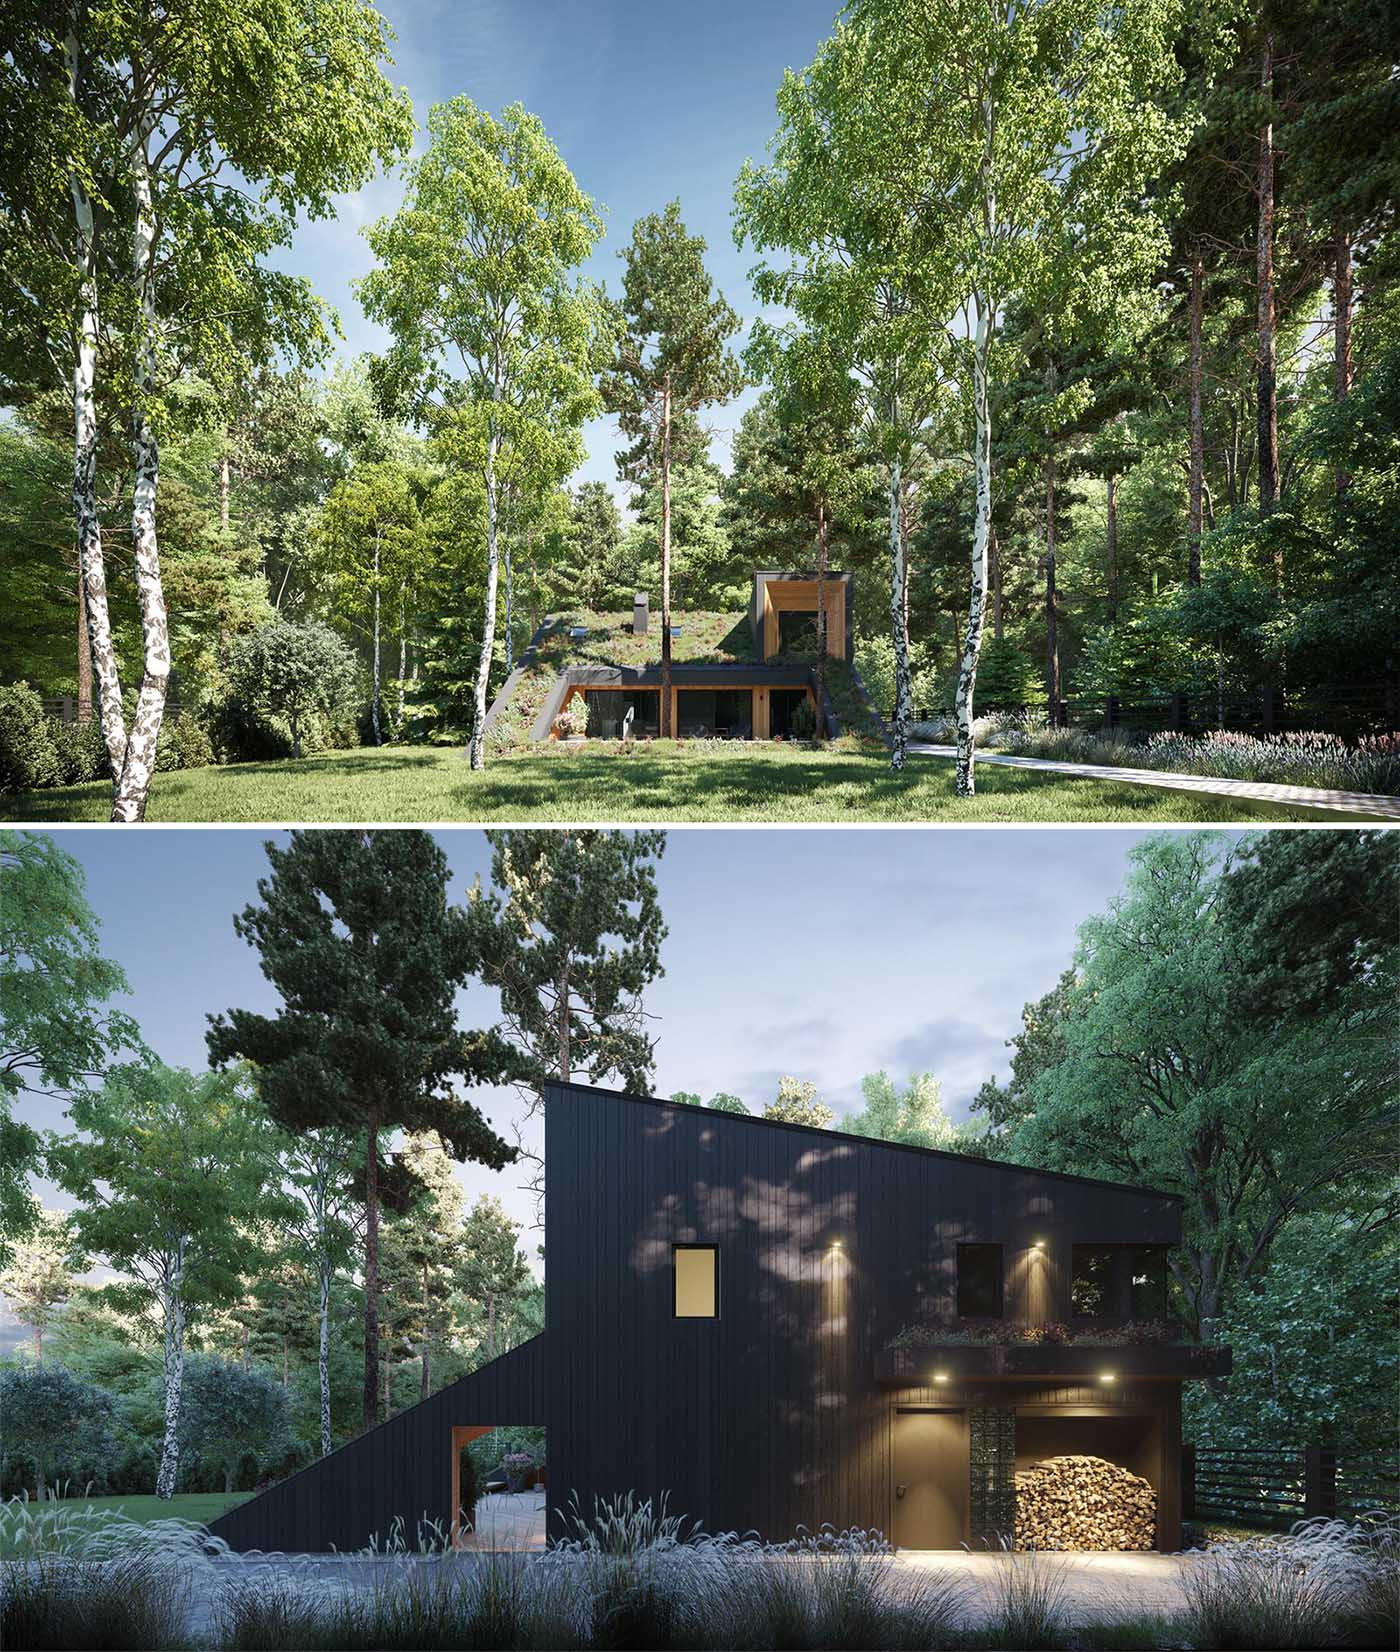 A modern house with a sloped green roof, and light and dark wood siding.